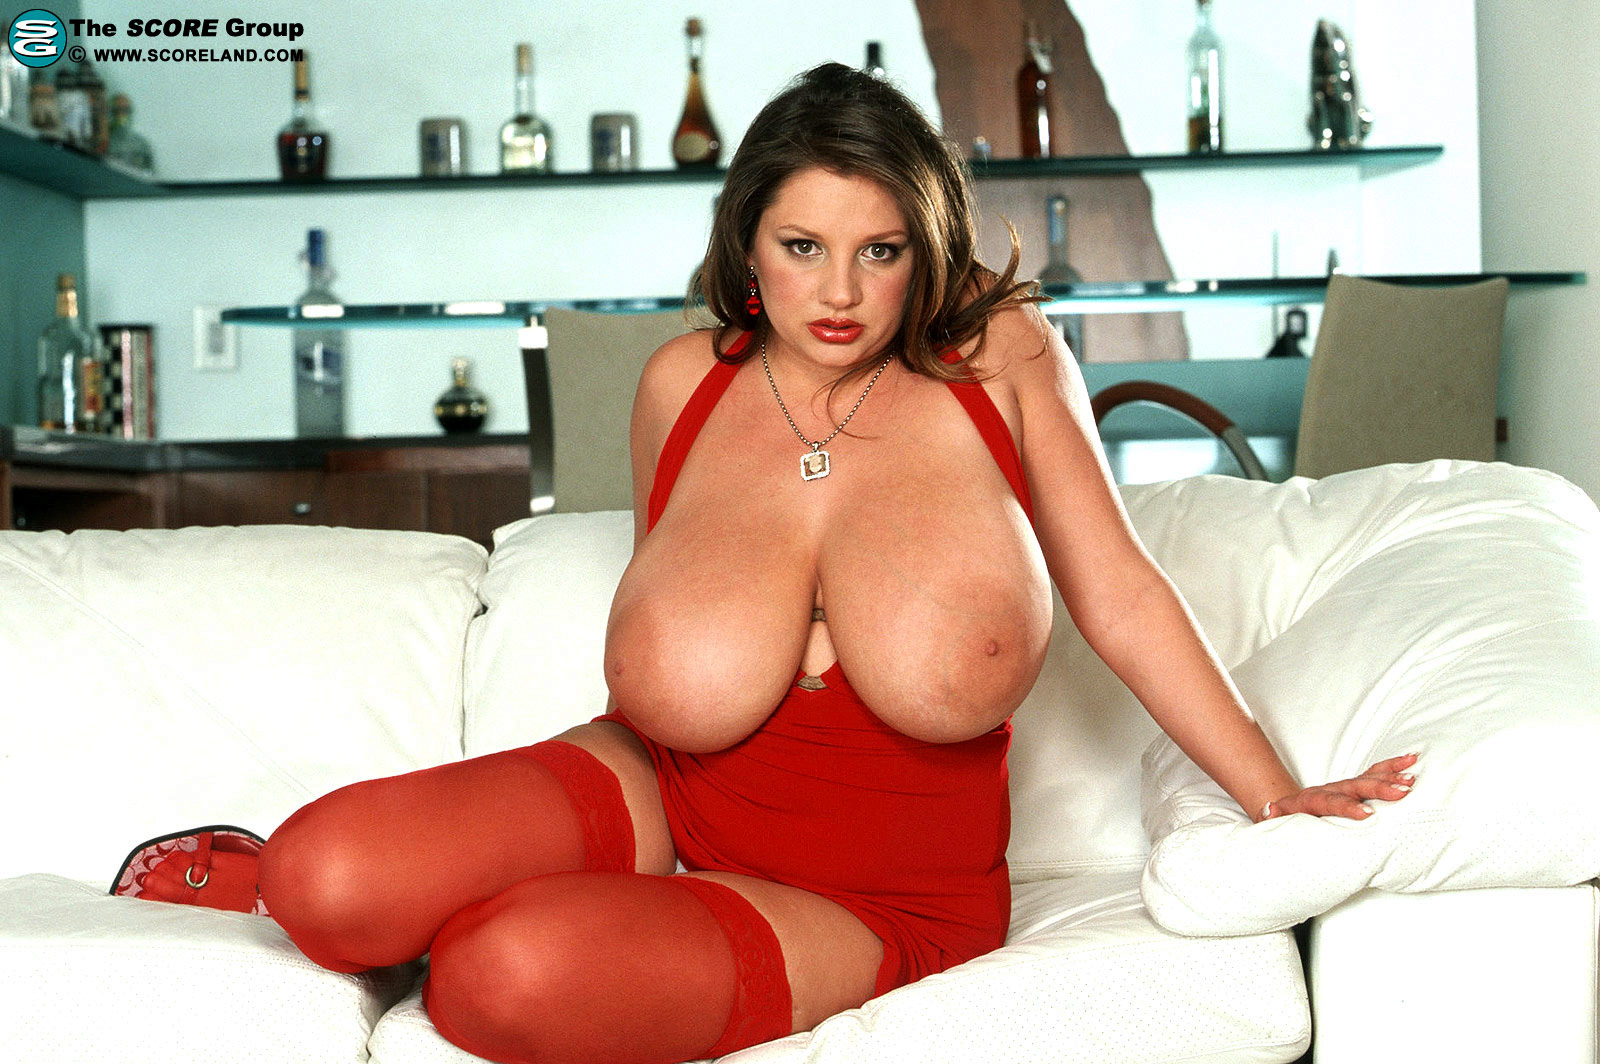 Elite brunette perky tits babes nude